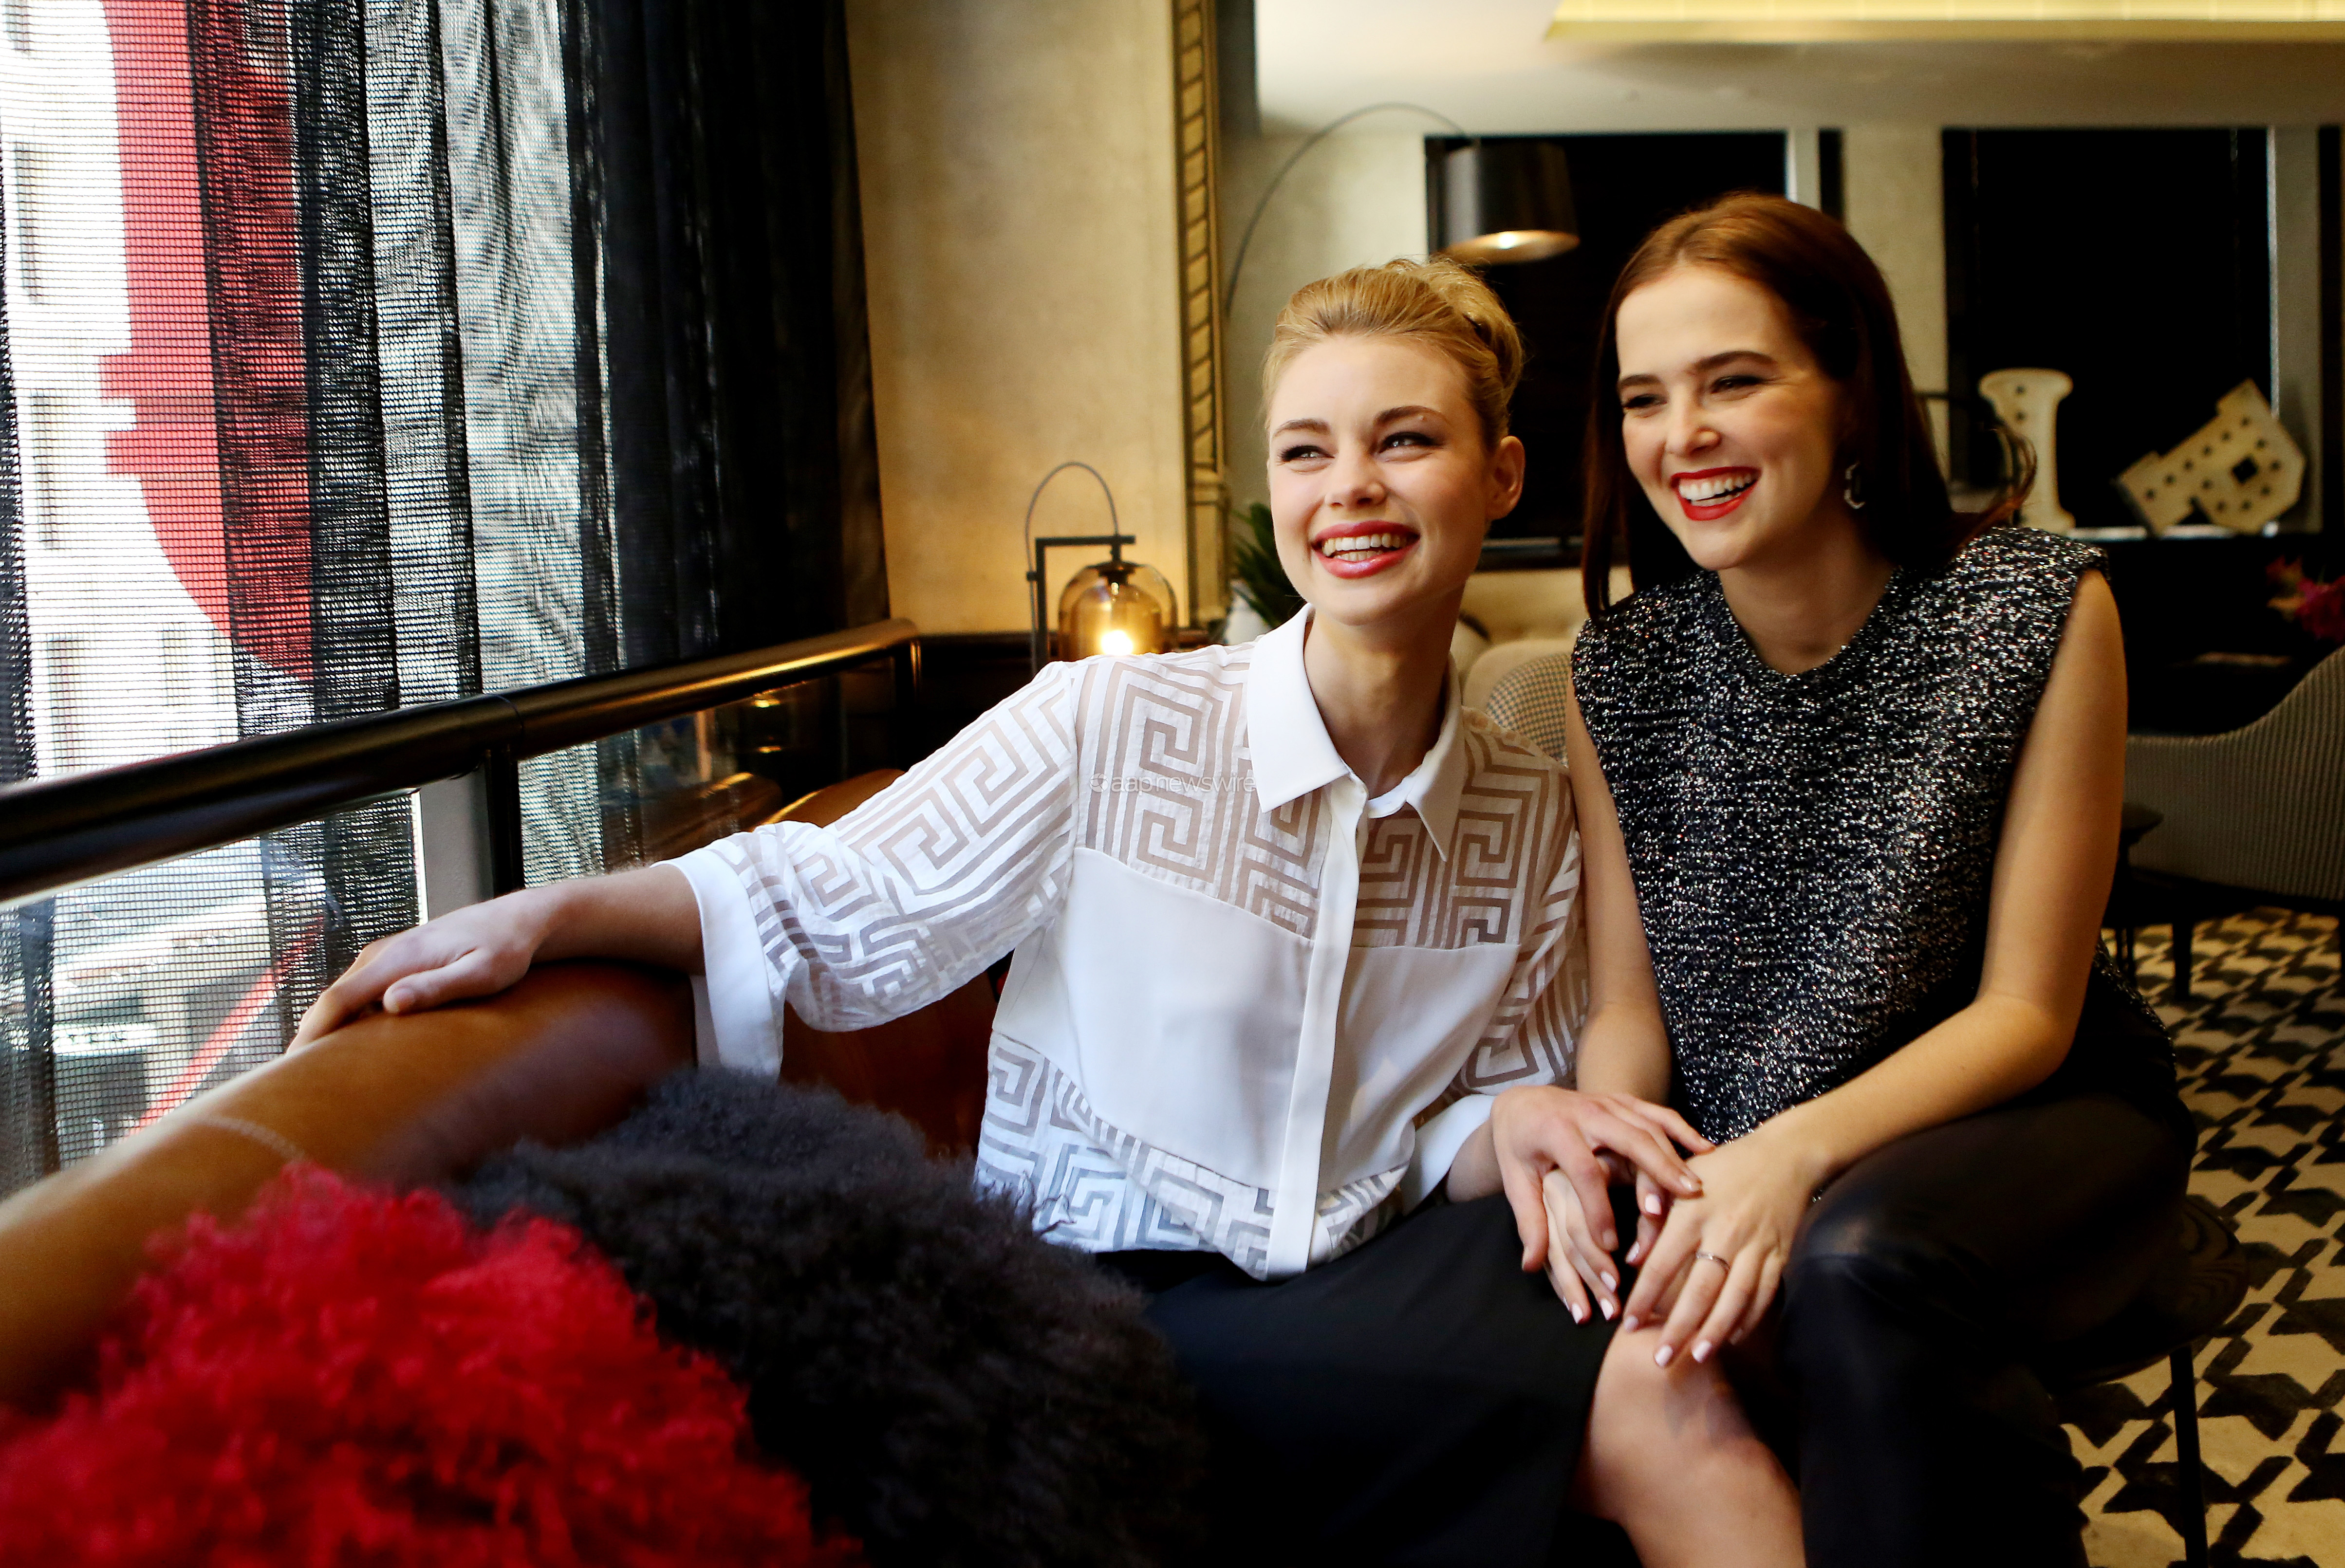 zoey截图_vampire academy images hq portraits of zoey deutch and lucy fry